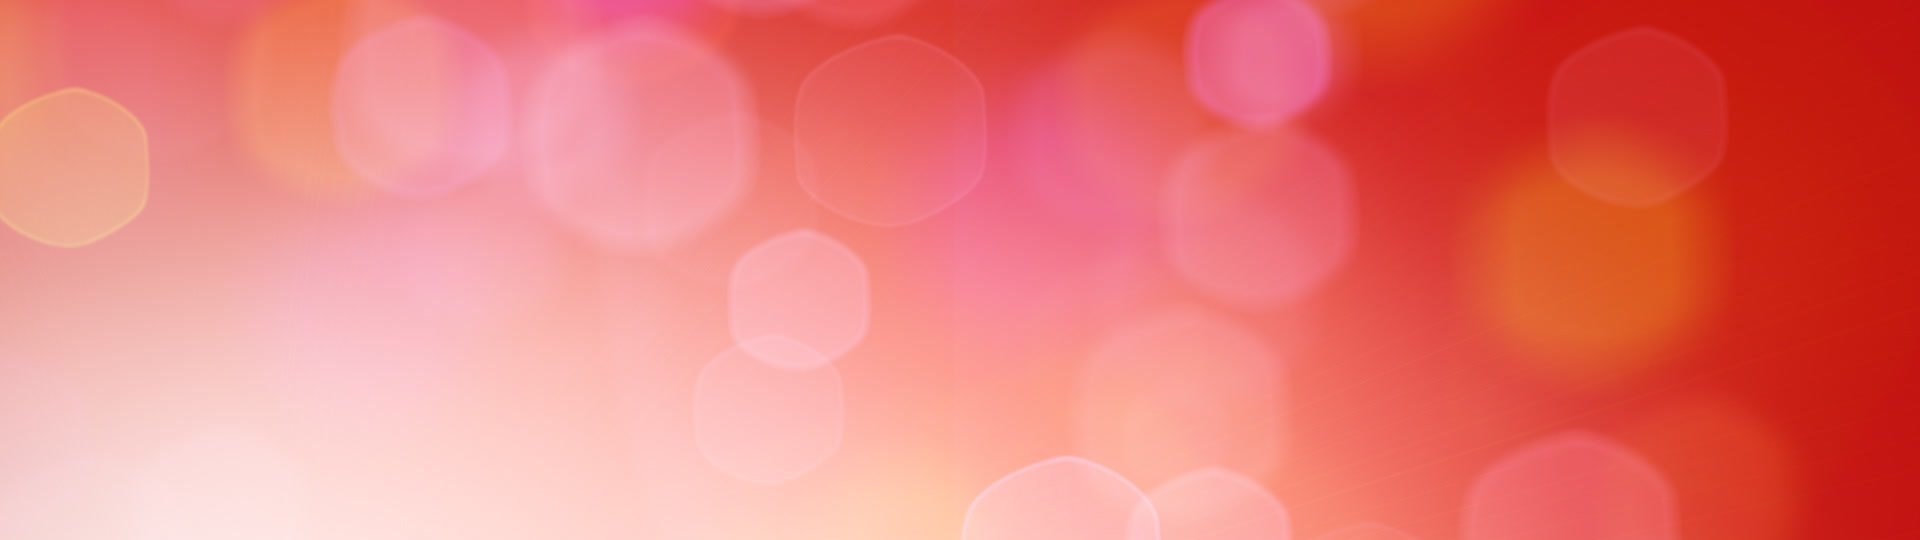 Red loopable background hexagonal lights | computer generated seamless loop abstract motion background. red hexagonal lights - ID:12443